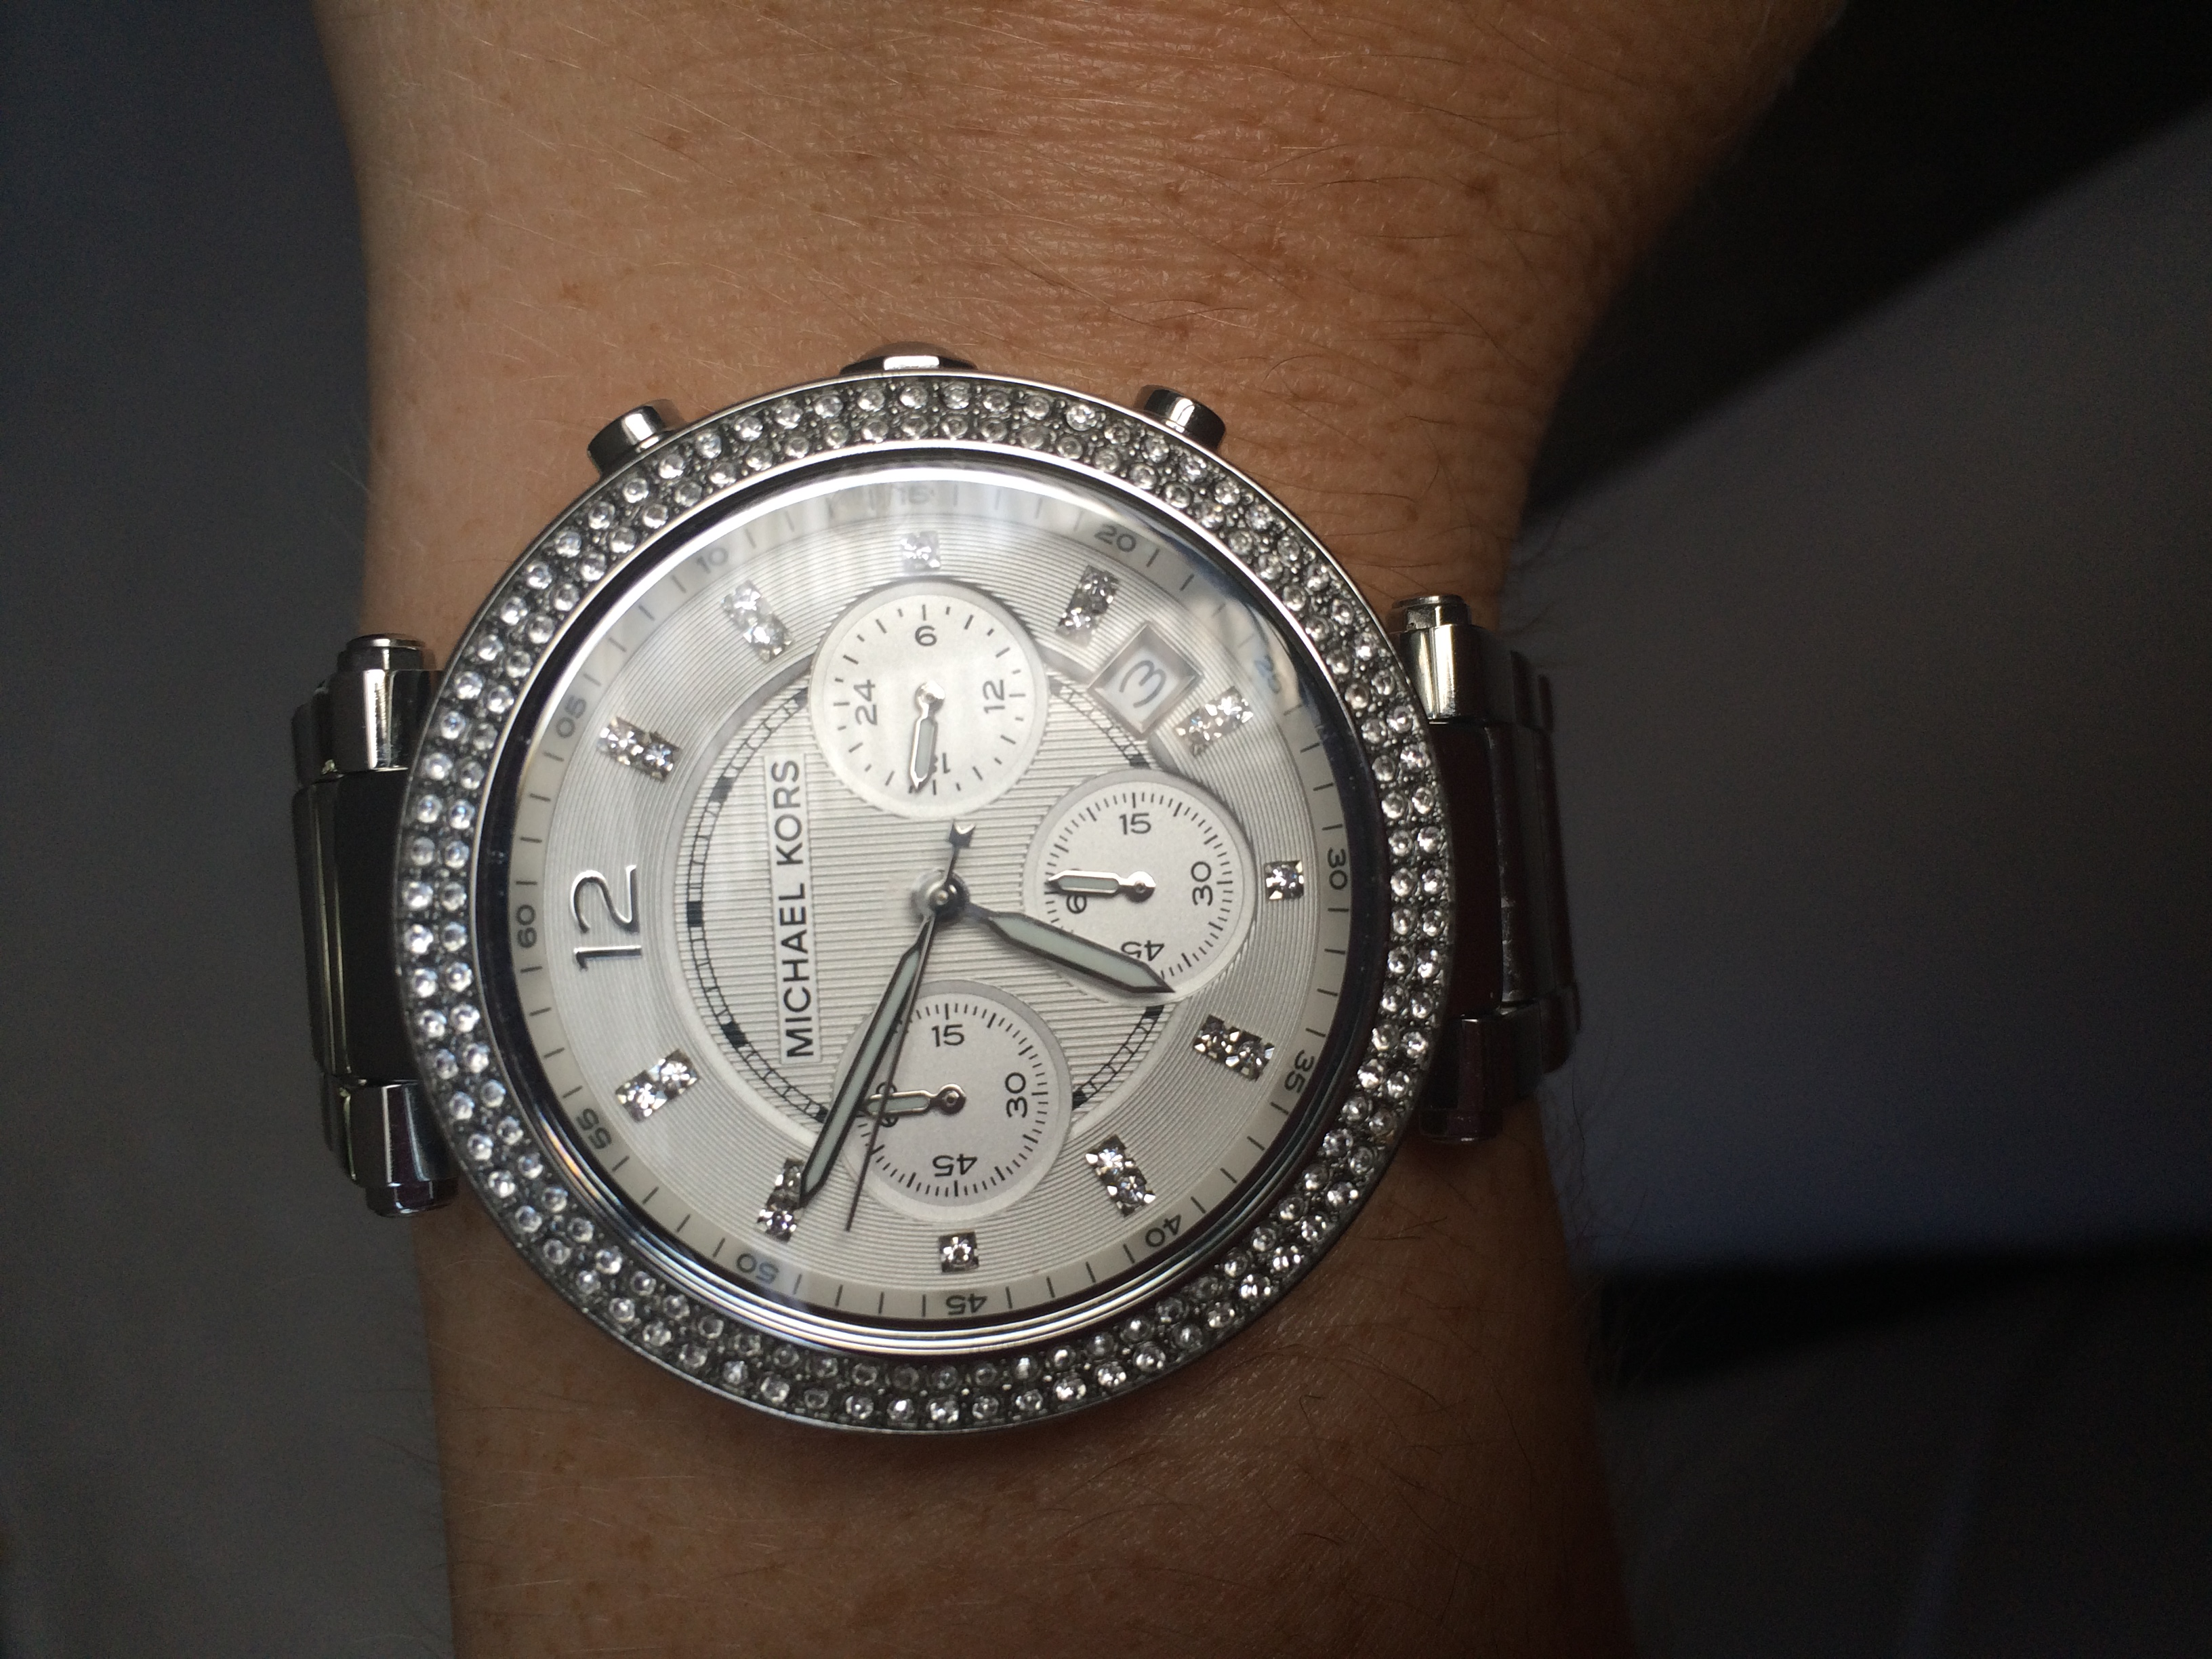 1f69205bb4cb I received the Michael Kors silver Parker watch for my birthday after  wanting one for a long time! I was not disappointed it is beautiful and Ive  received ...